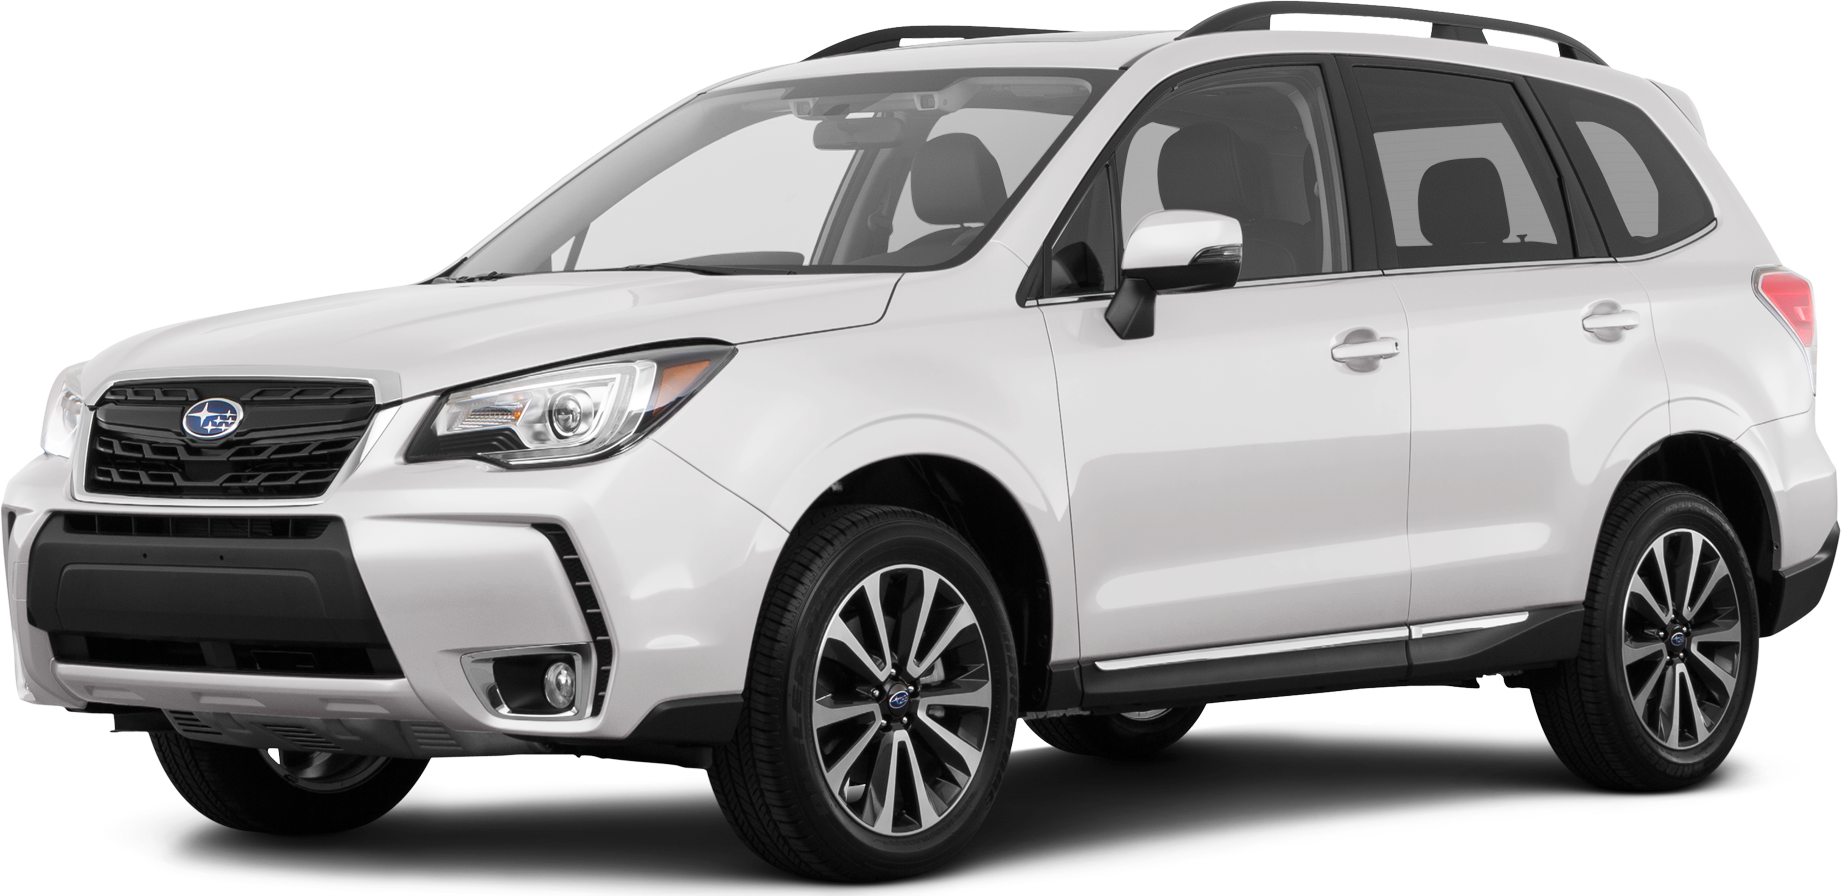 Used 2017 Toyota Rav4 Values Cars For Sale Kelley Blue Book